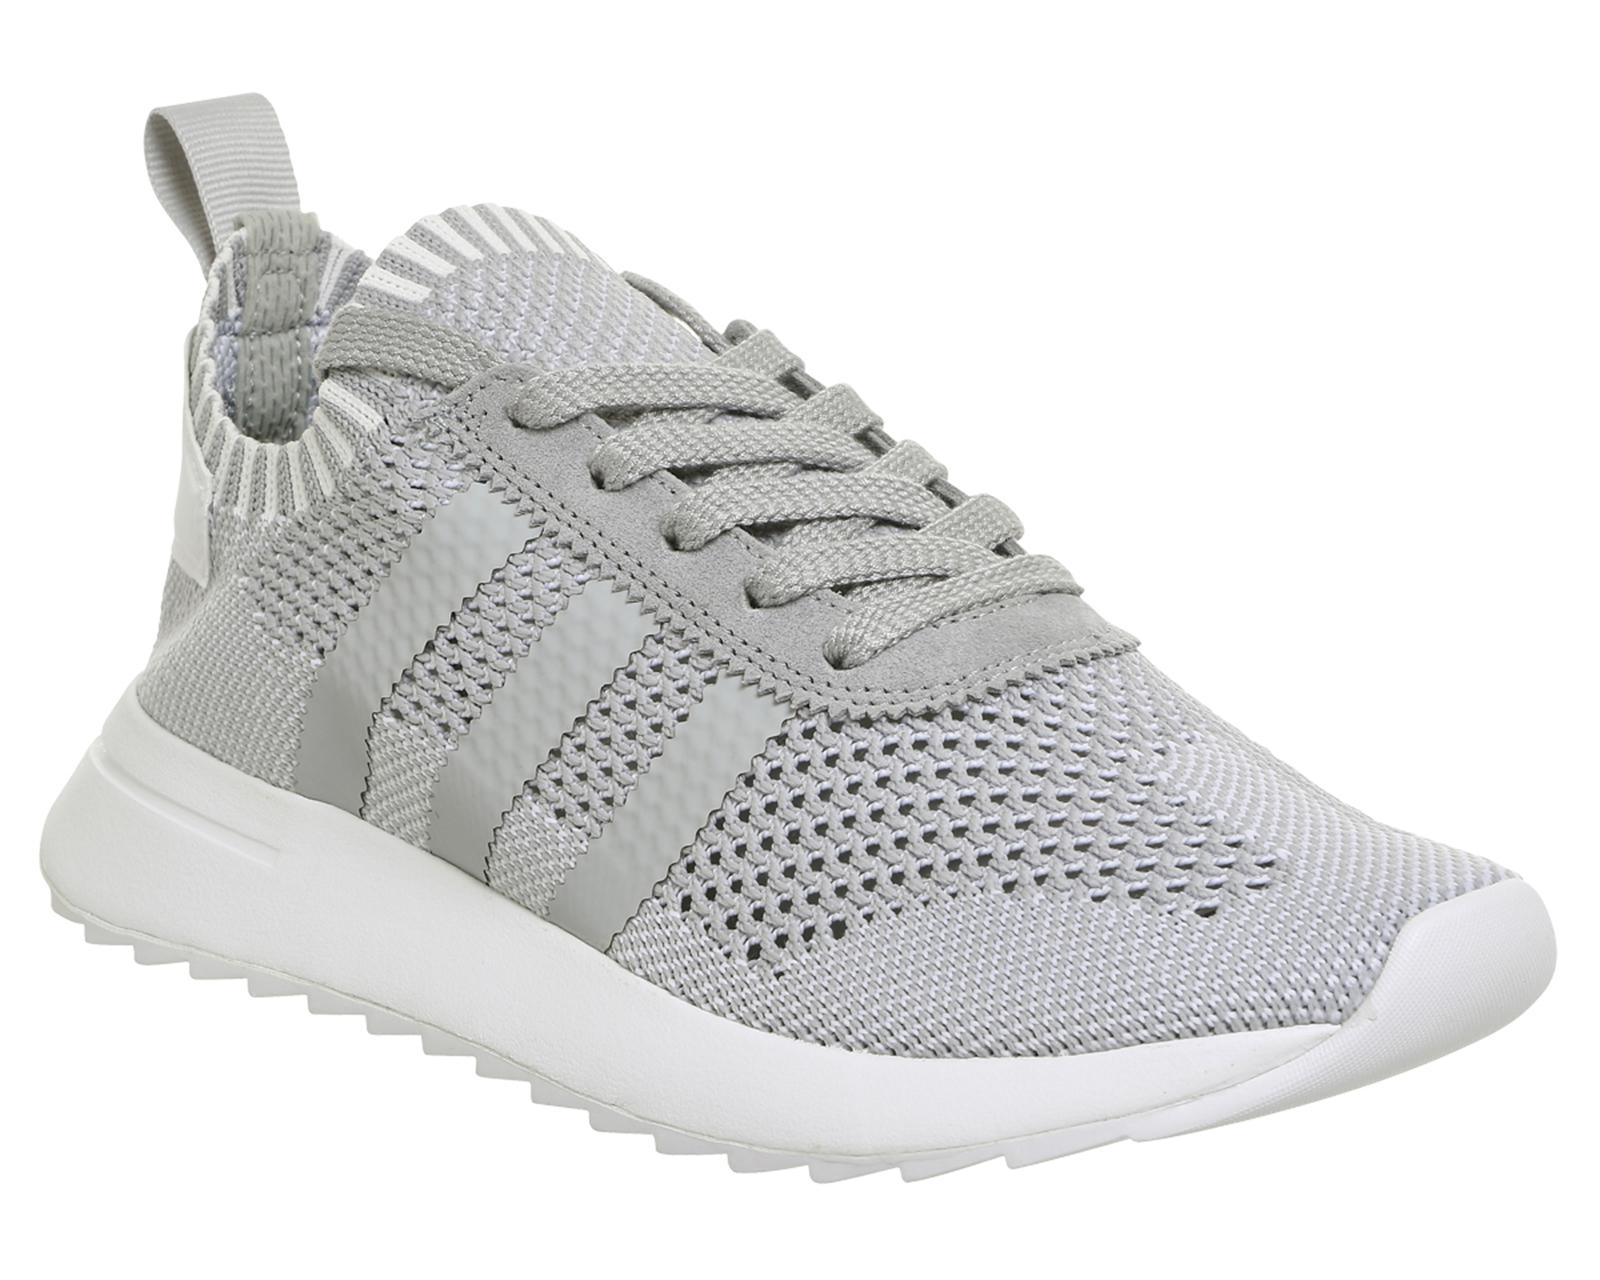 adidas Flashback Prime Knit Trainers in